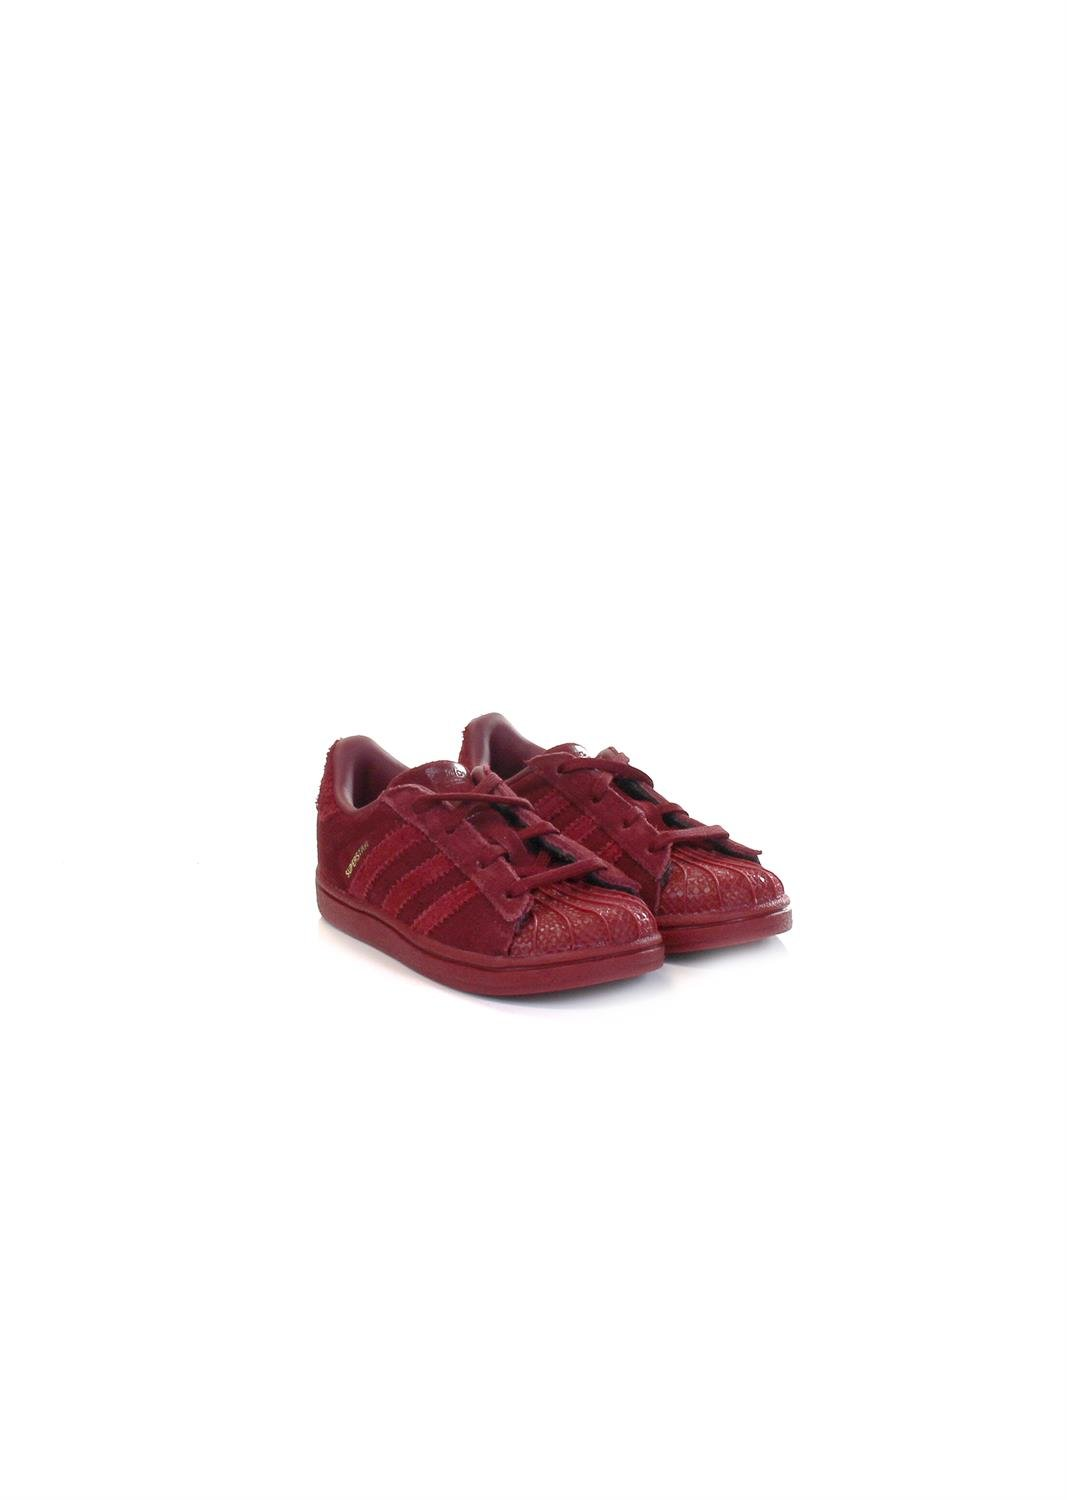 separation shoes 010ff 93e34 Scarpe kids ADIDAS SUPERSTAR in pelle e suede sintetico bordeaux CG3742 -  mainstreetblytheville.org